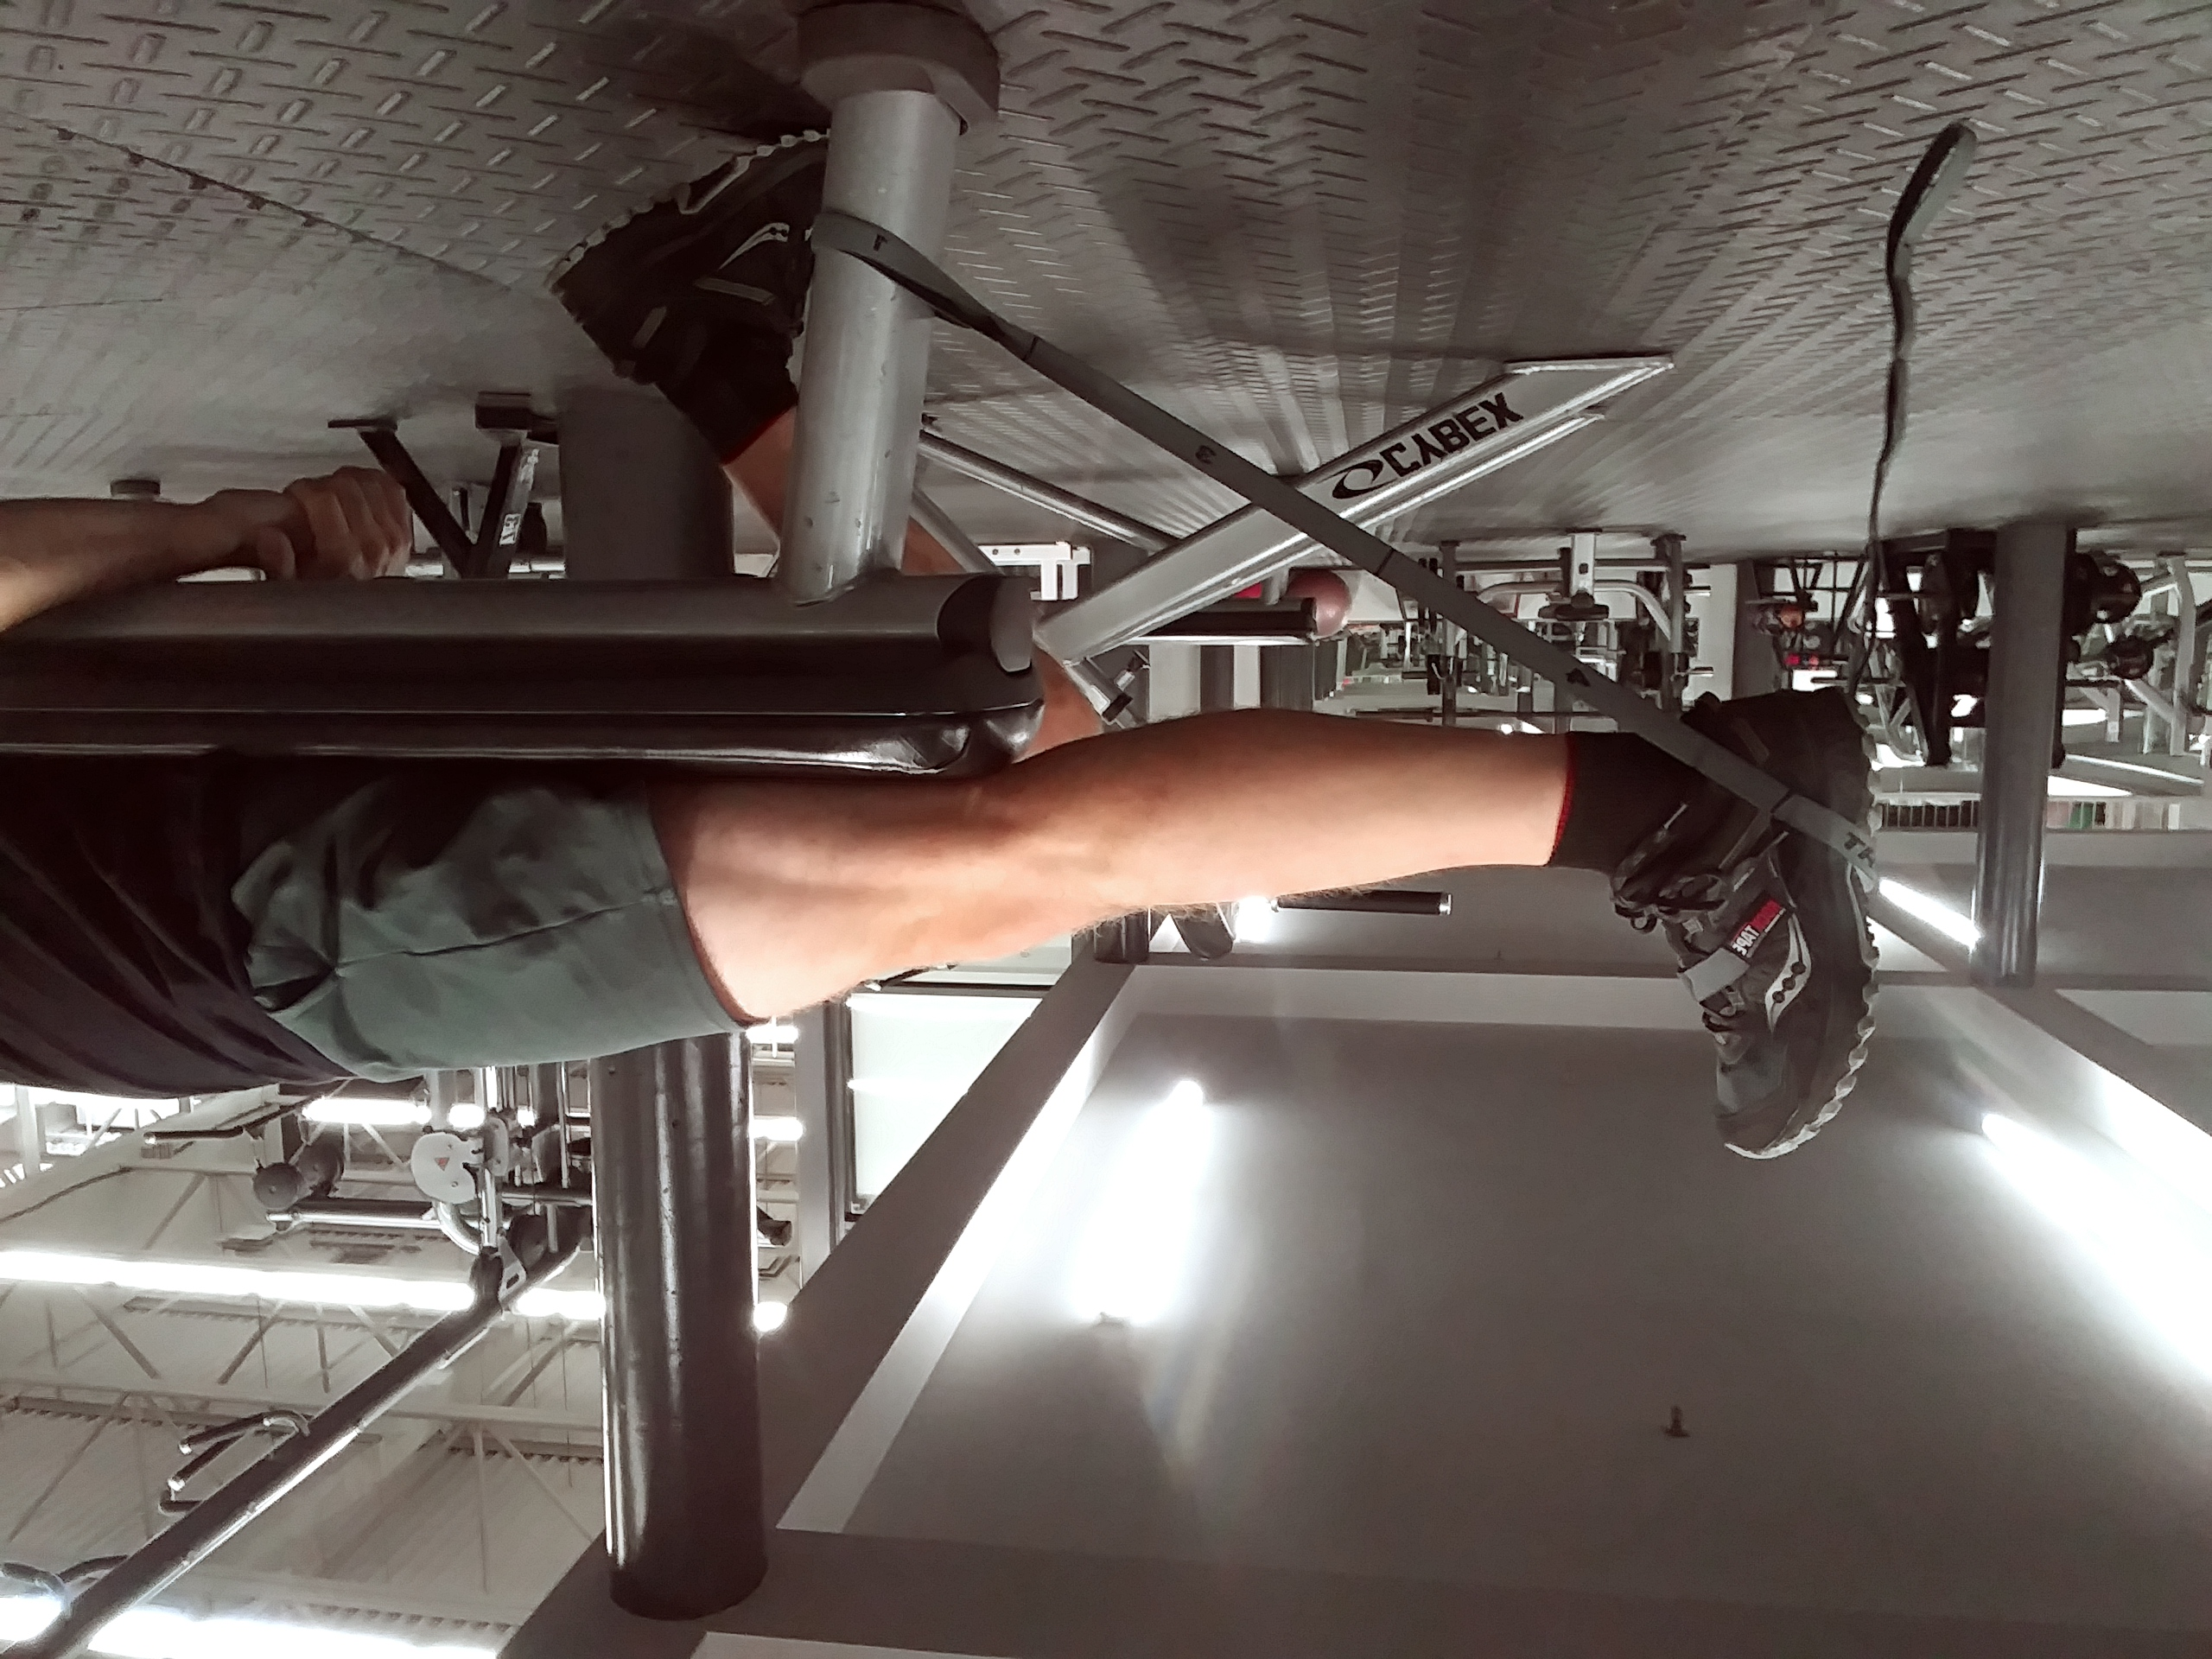 Jumper's knee - isotonic strength